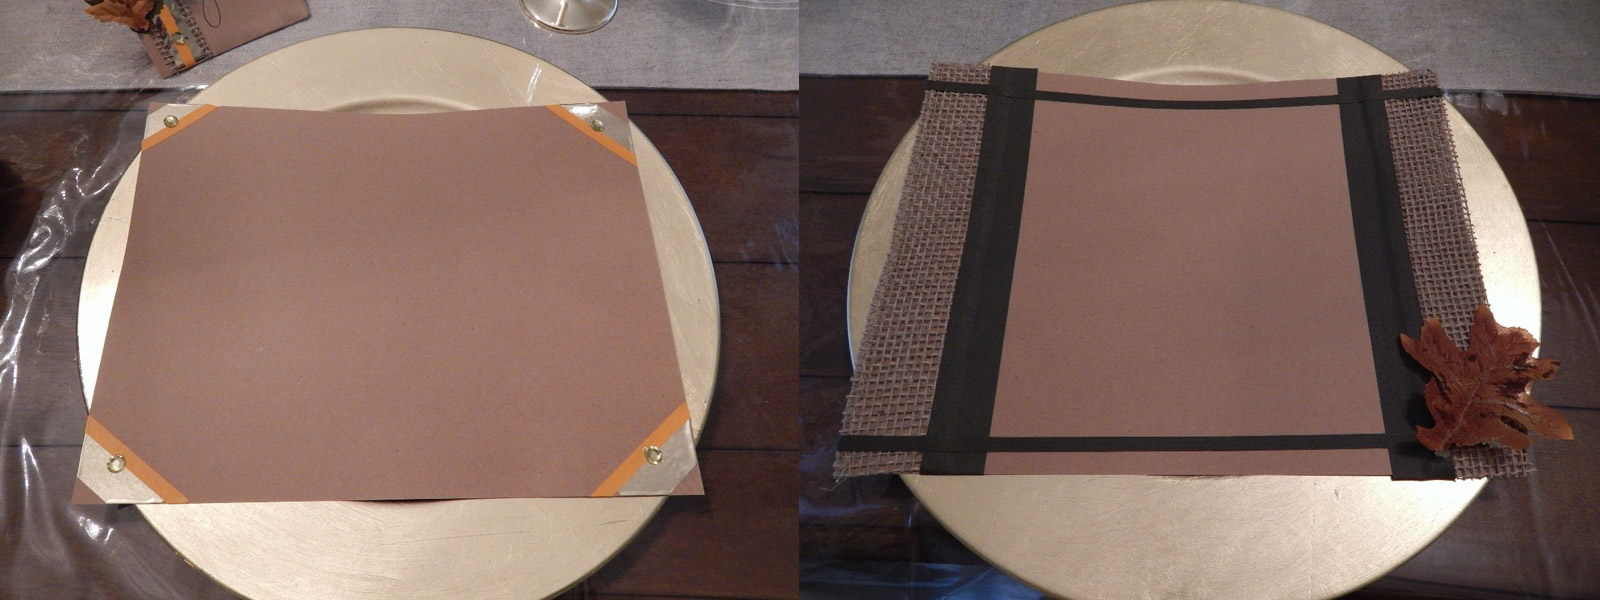 I did the same with burlap on cardstock and made a few patterns that I decided to use as placemats. I used UGlu® to attach the burlap to the card stock. I also used other tapes such as Pro® Artist tape and Pro® Gaff in black as embellishments.